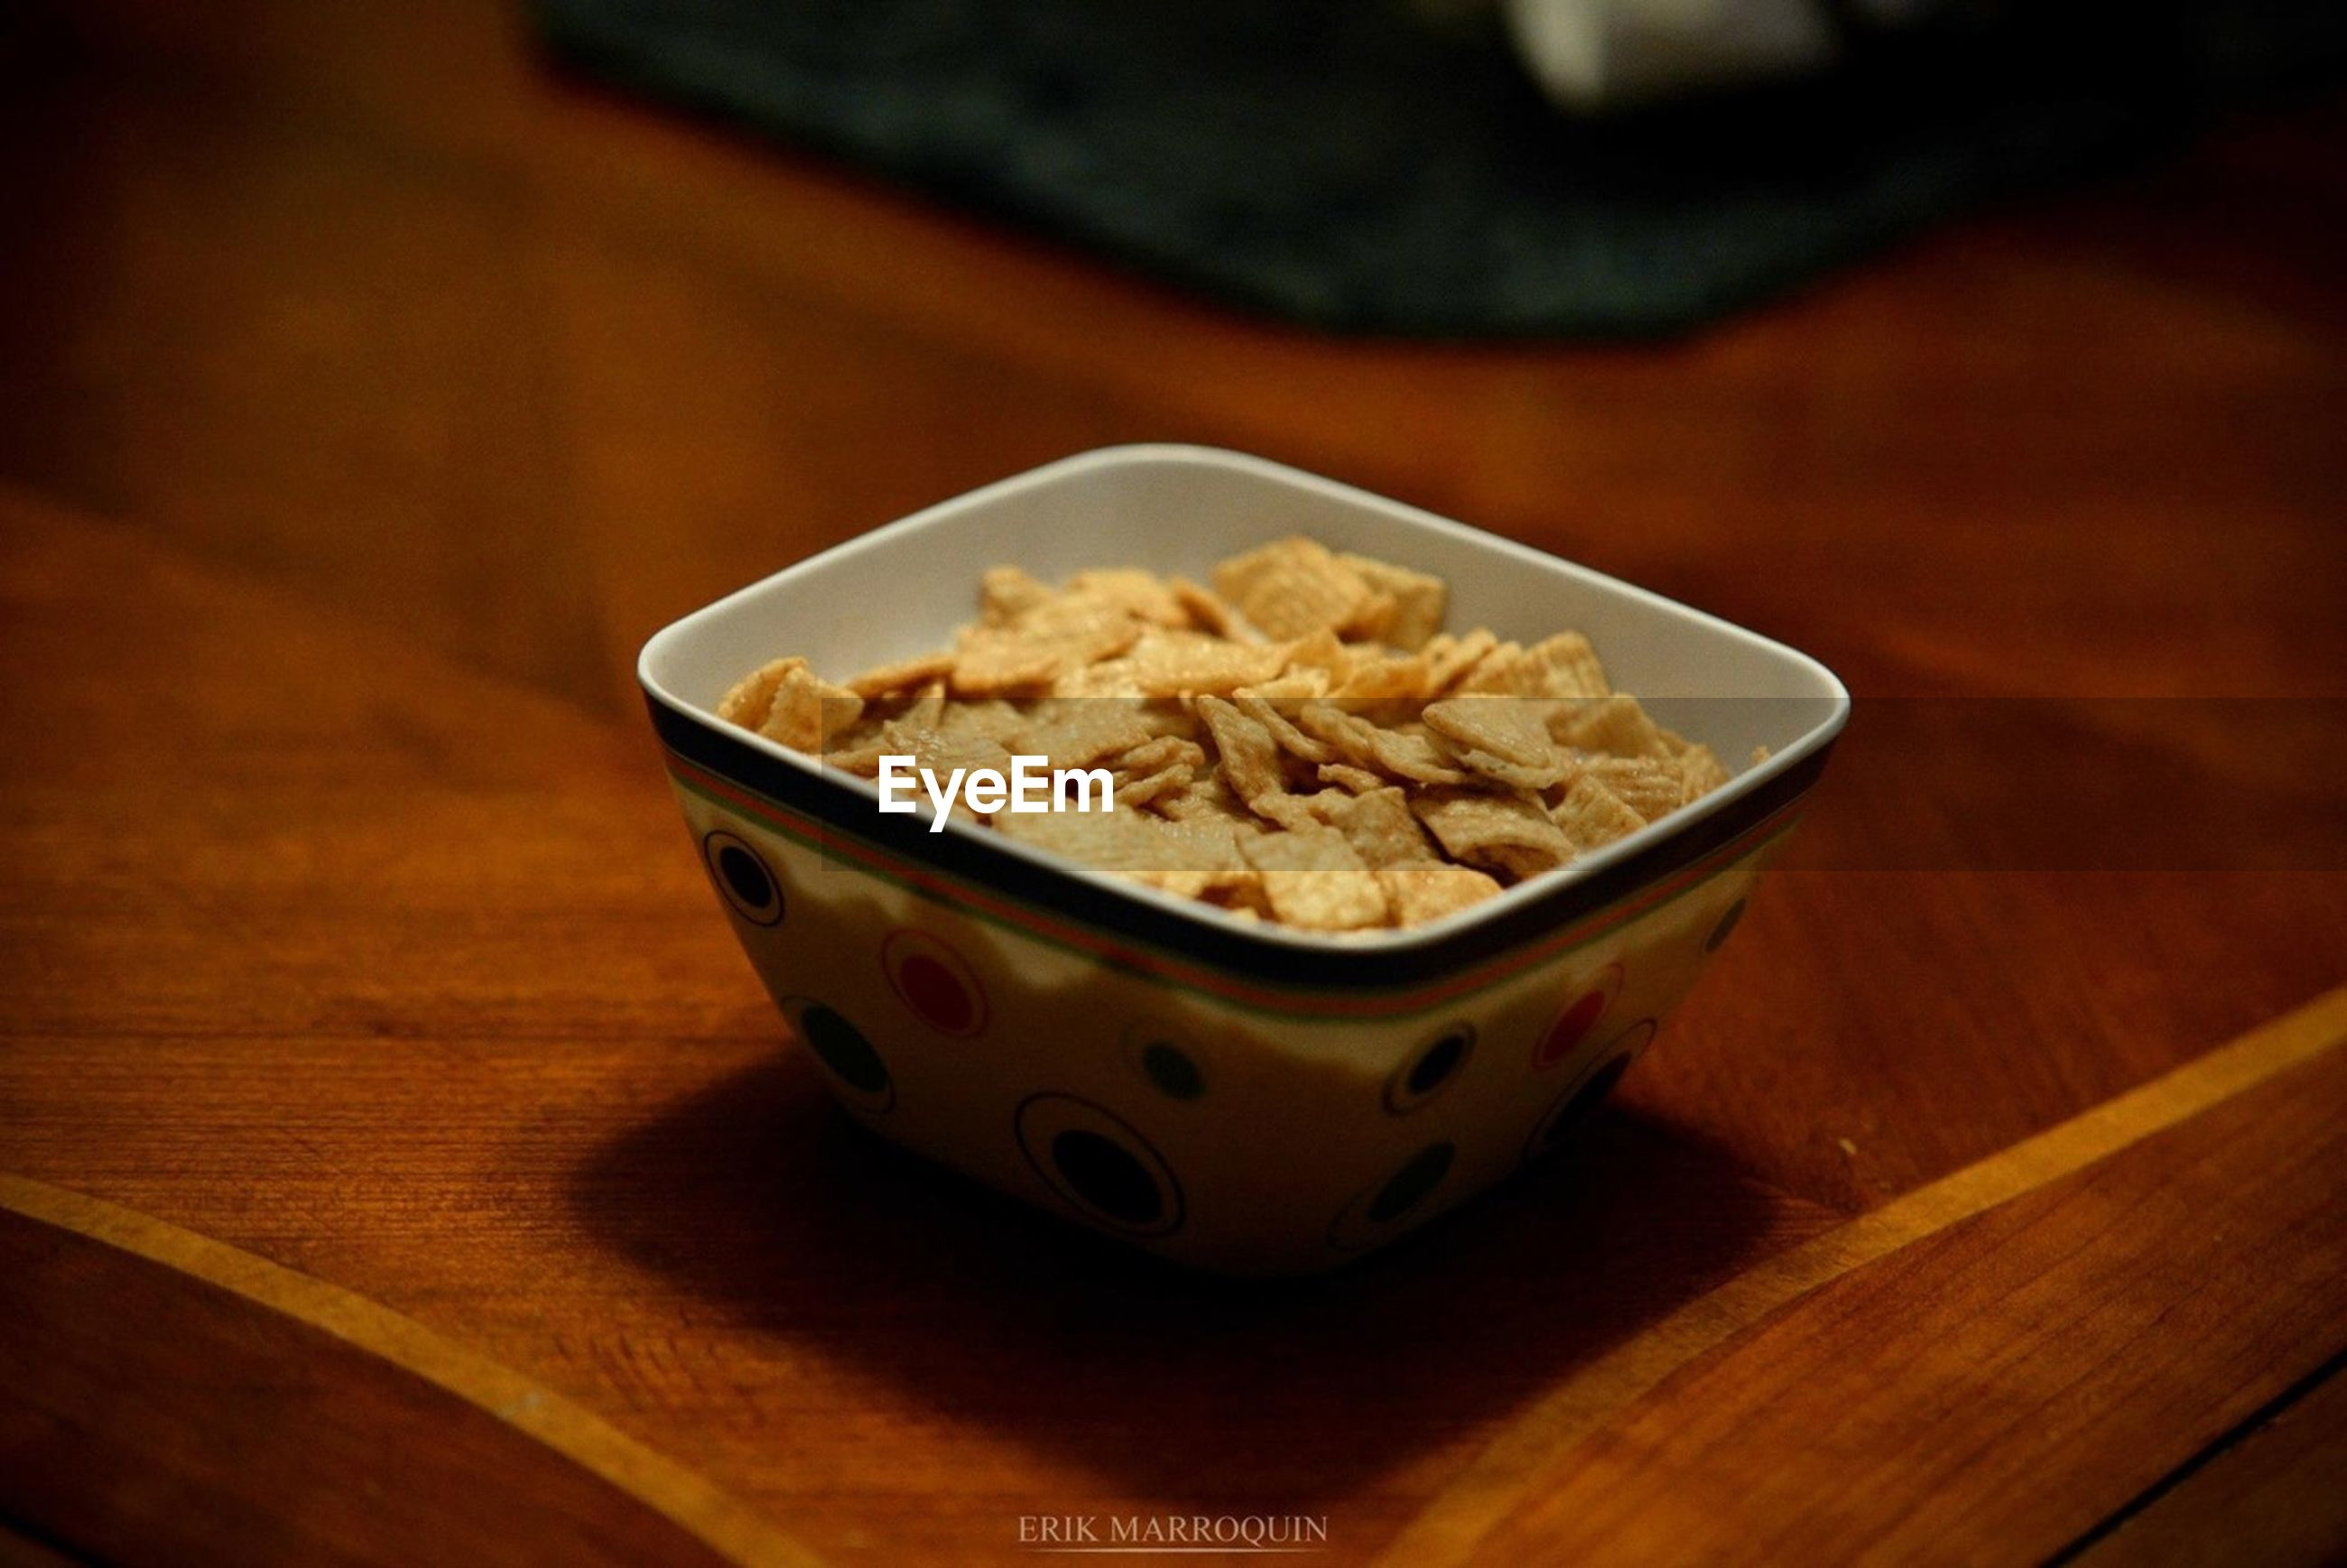 food and drink, indoors, food, freshness, table, still life, ready-to-eat, healthy eating, wood - material, bowl, plate, close-up, meal, indulgence, selective focus, high angle view, serving size, wooden, no people, focus on foreground